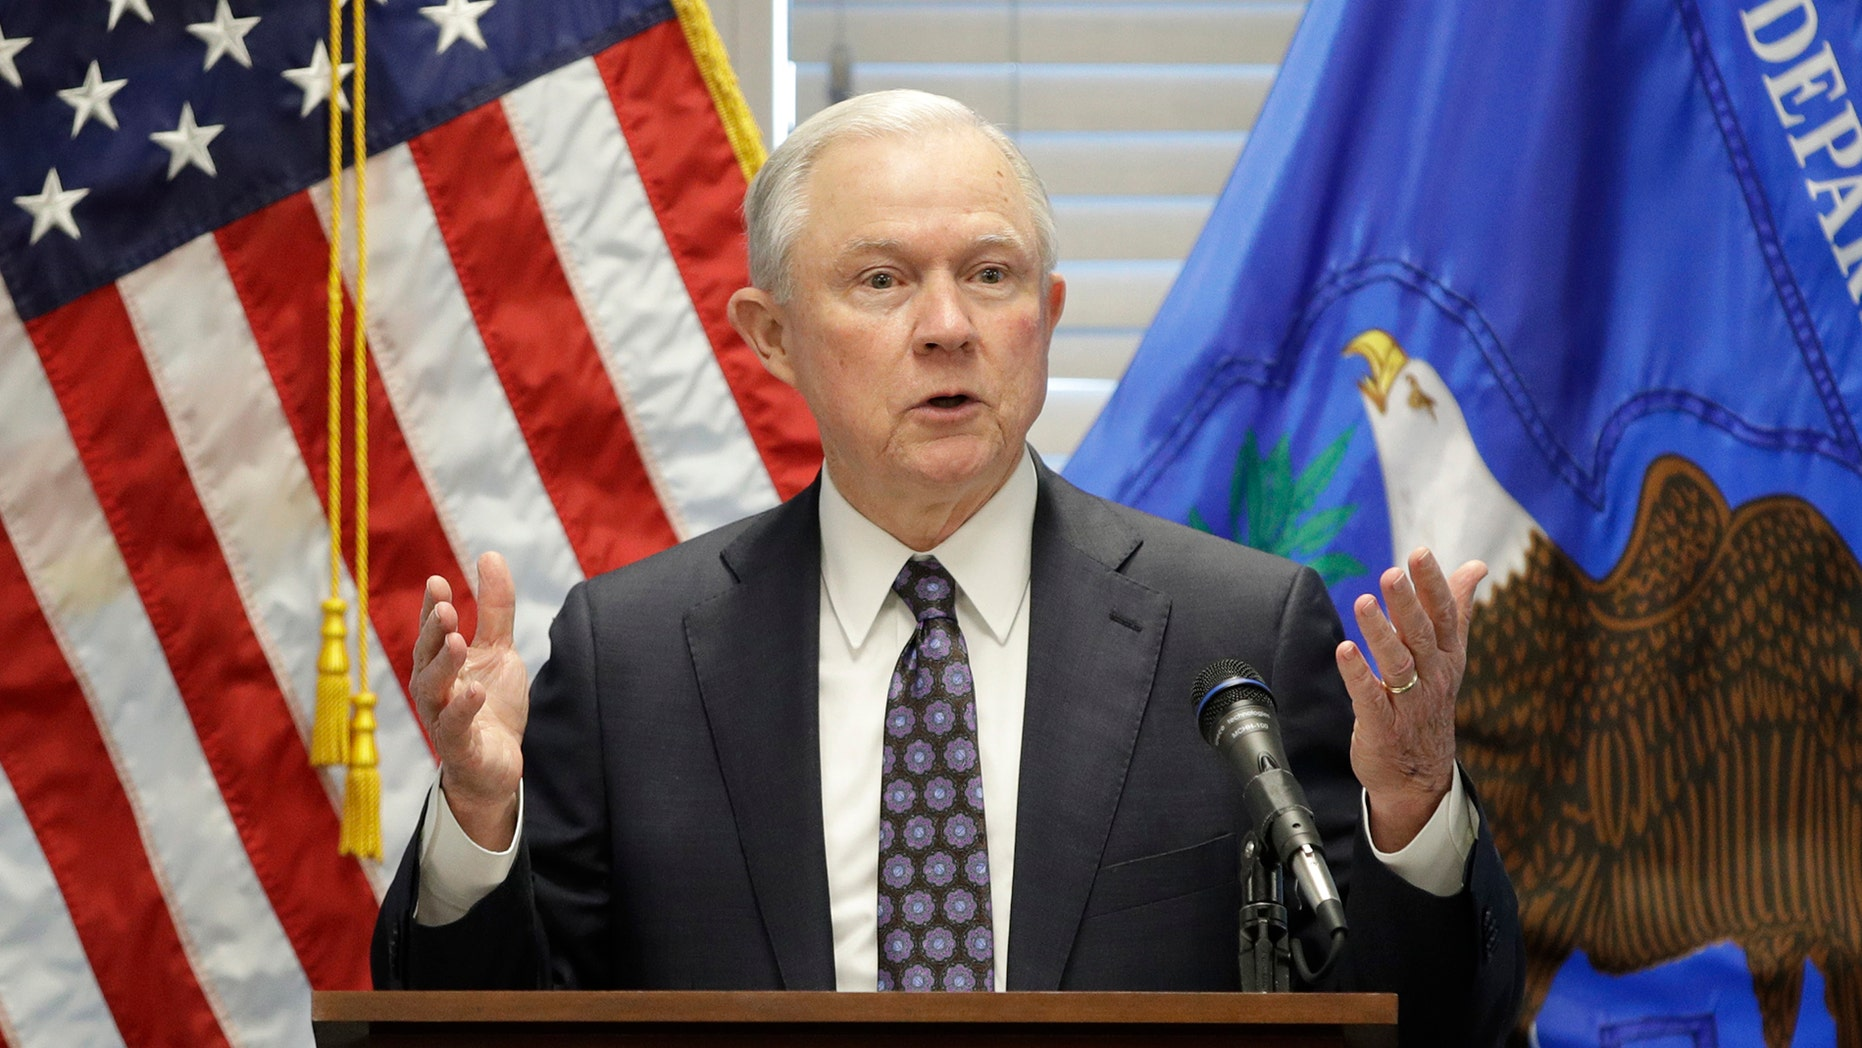 President Trump has been critical of Attorney General Jeff Sessions in recent days, prompting speculation that Sessions could be fired or forced to resign.